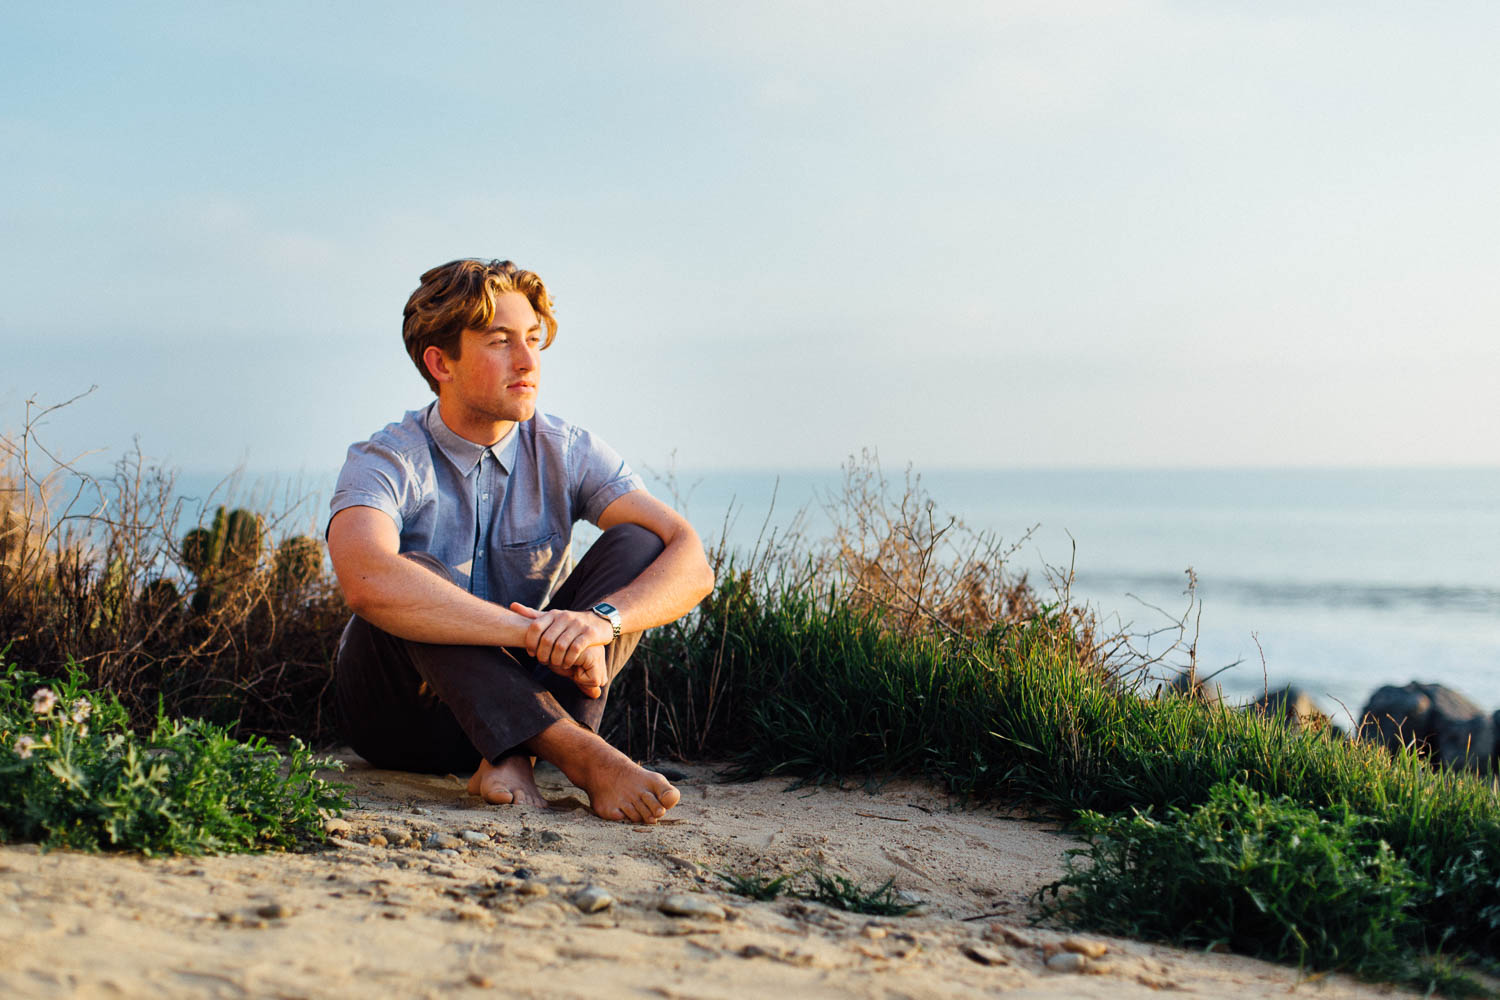 san_clemente_senior_portrait_photographer (4 of 7).jpg